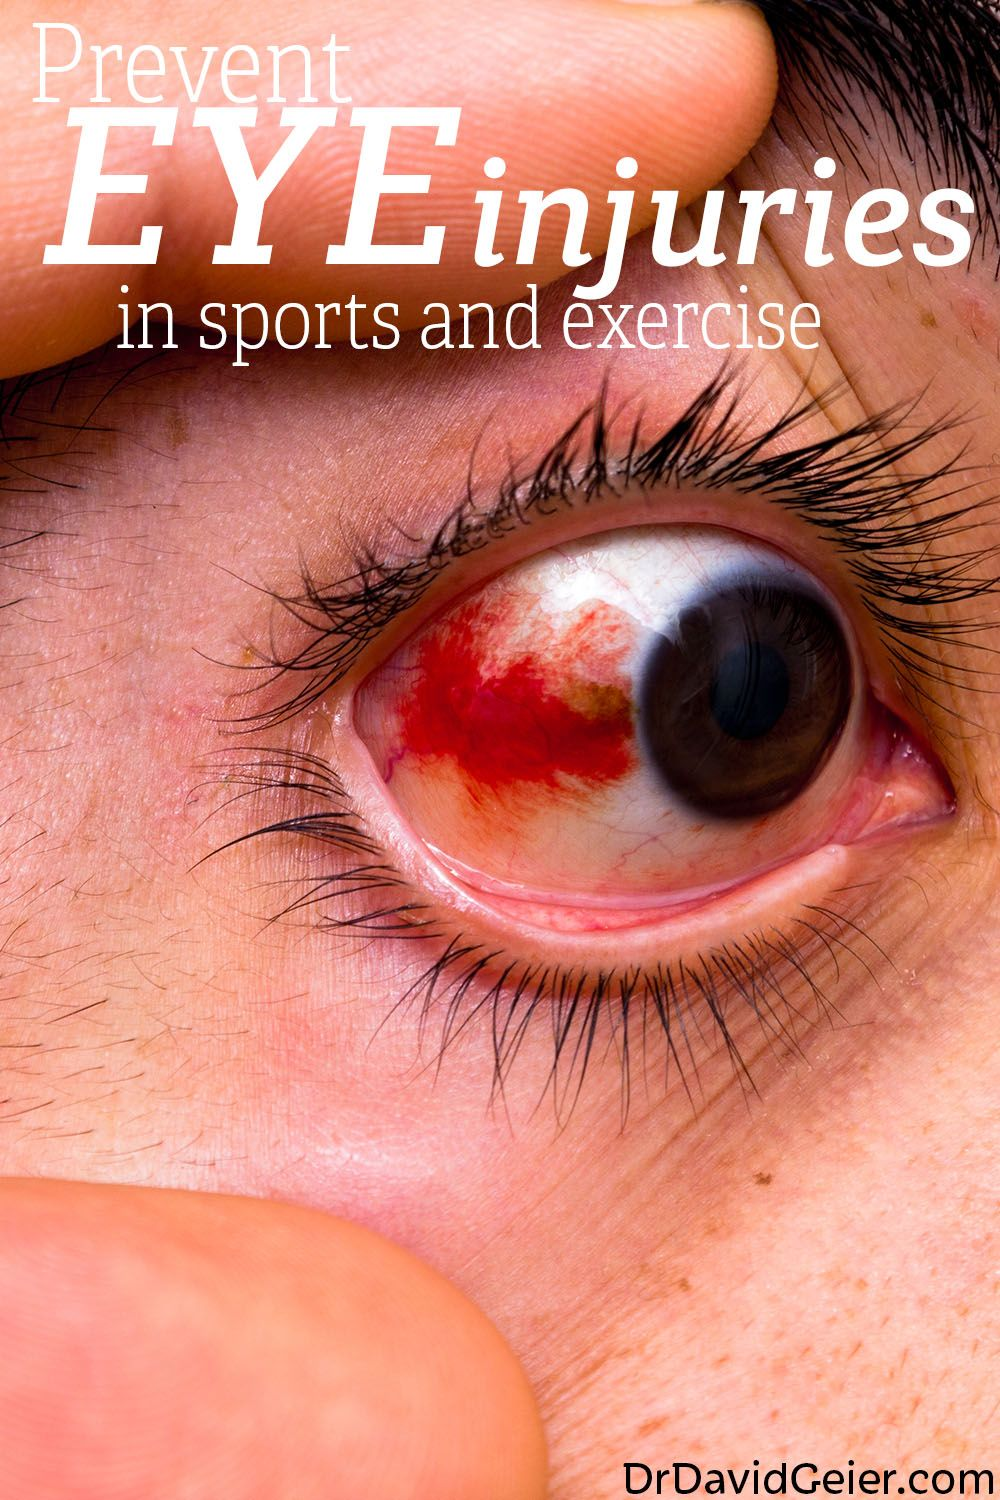 Prevent eye injuries in sports and exercise from